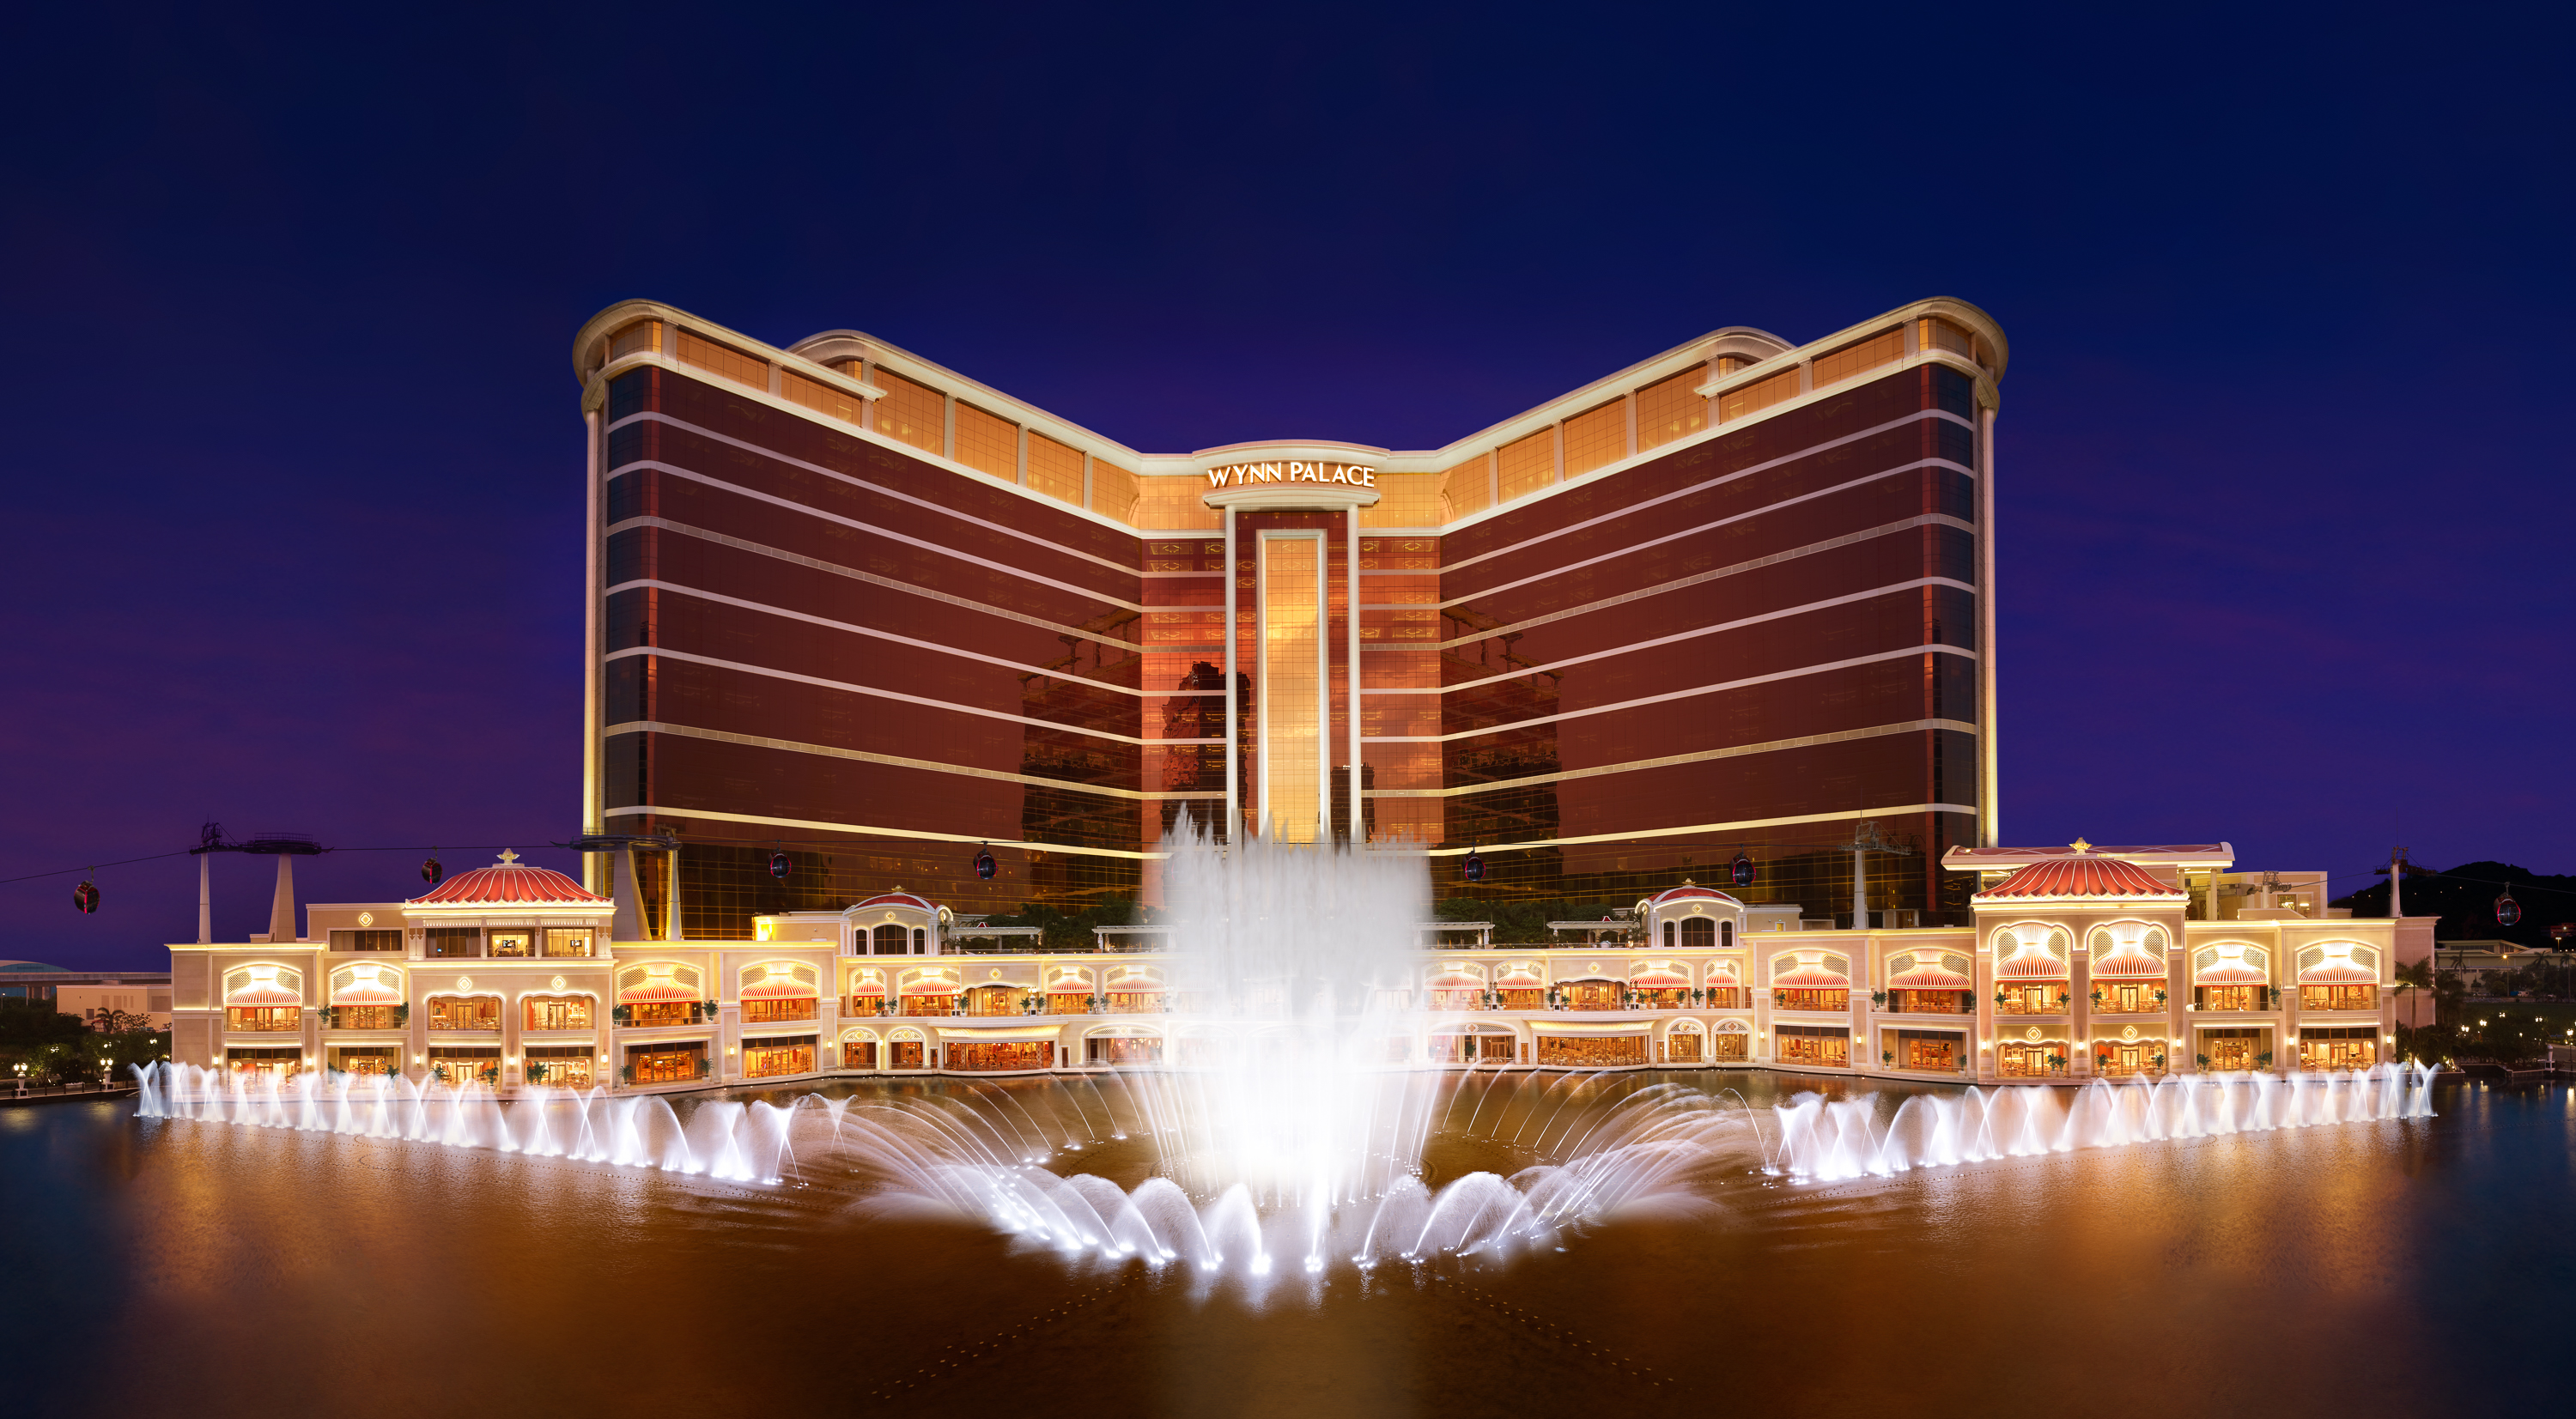 Stay in the lap of luxury in Macau at Wynn Palace